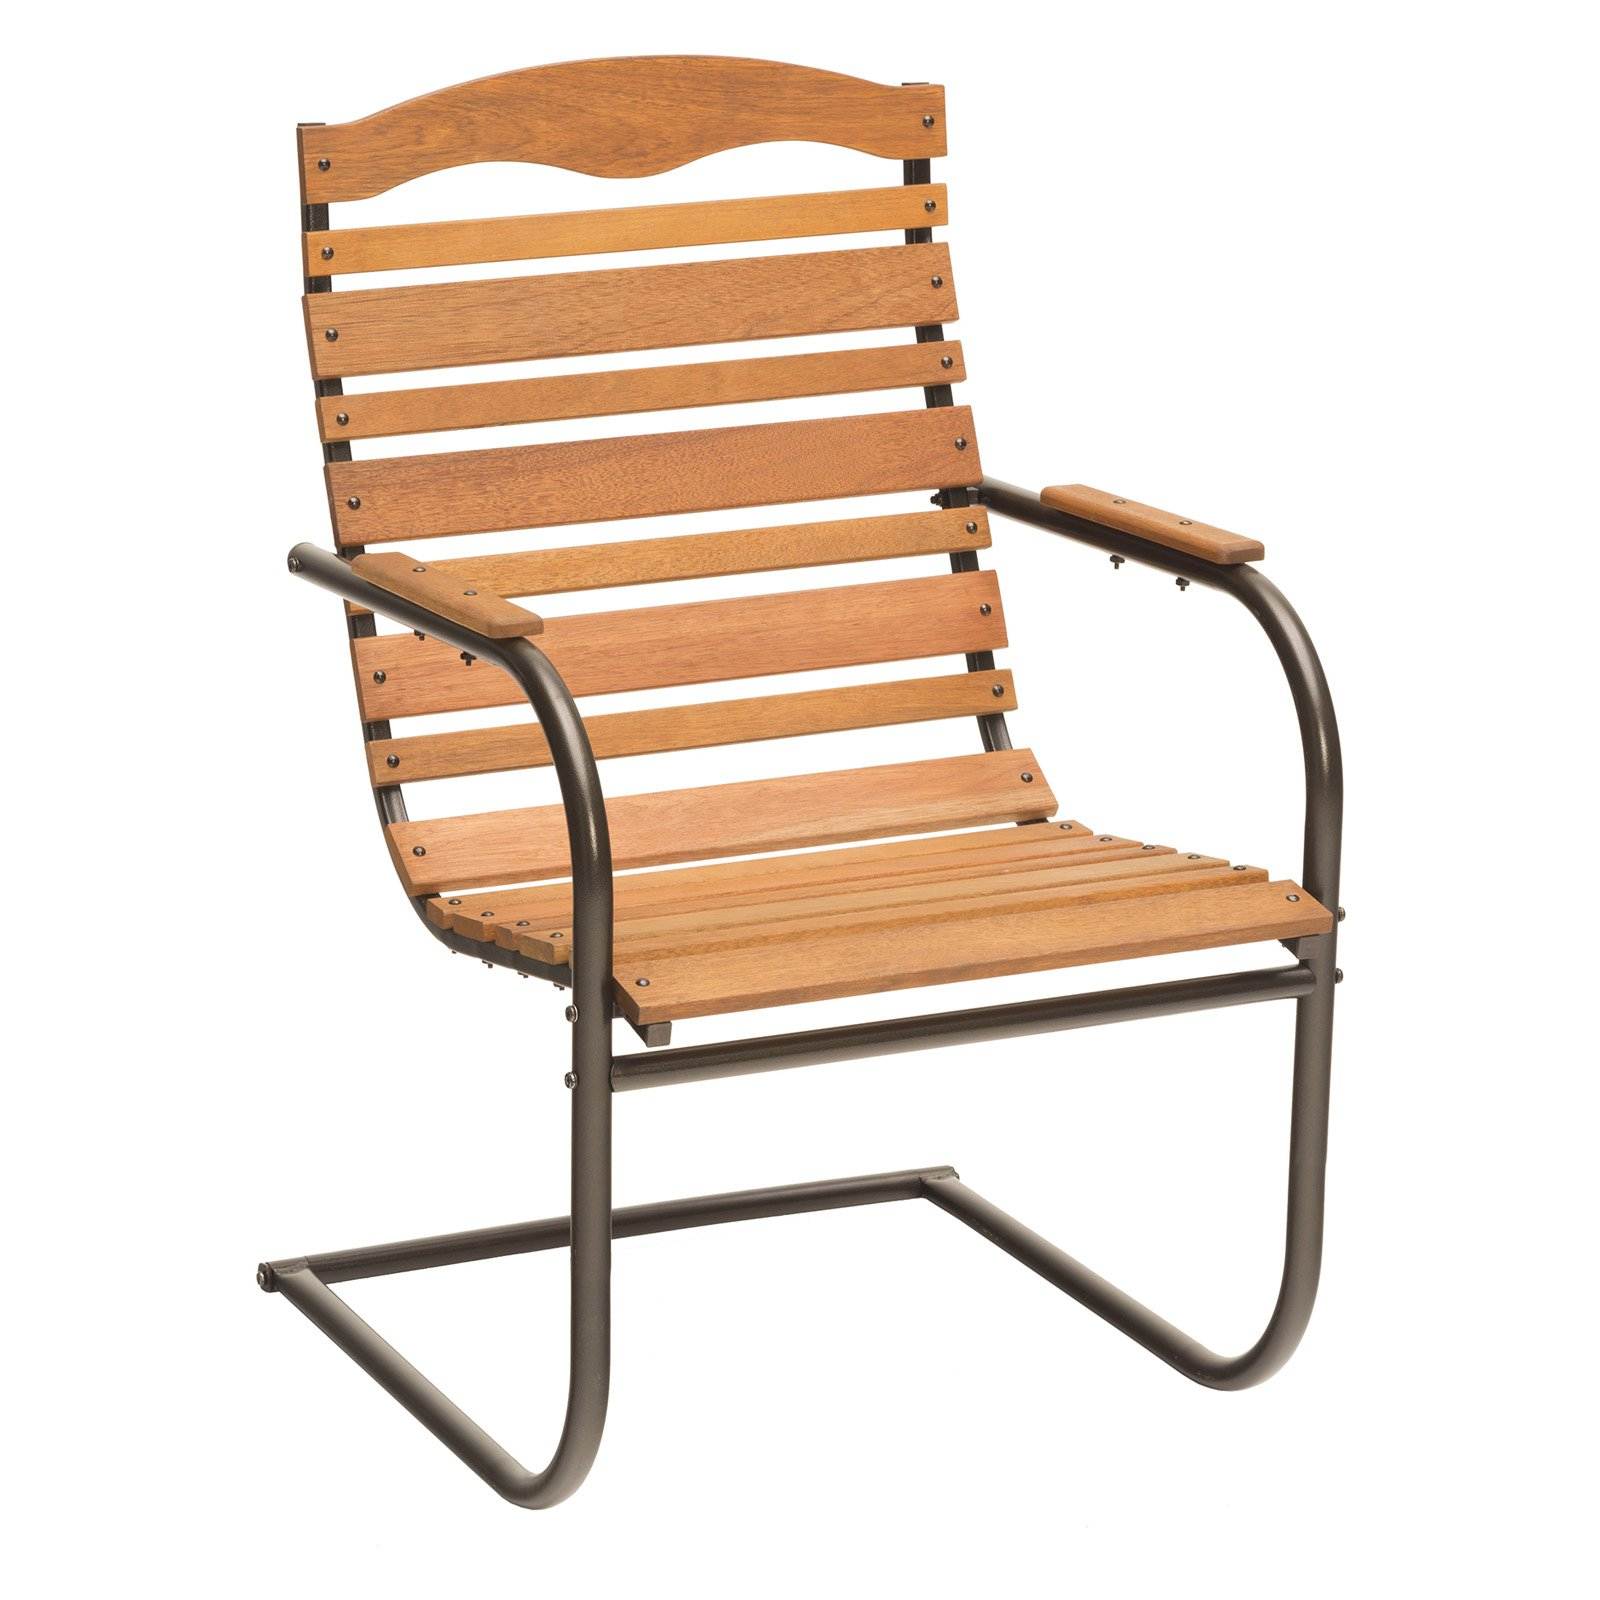 "Jack Post CG-07Z-JE Spring Chair, 26.5"" x 24.5"" x 38.5"""